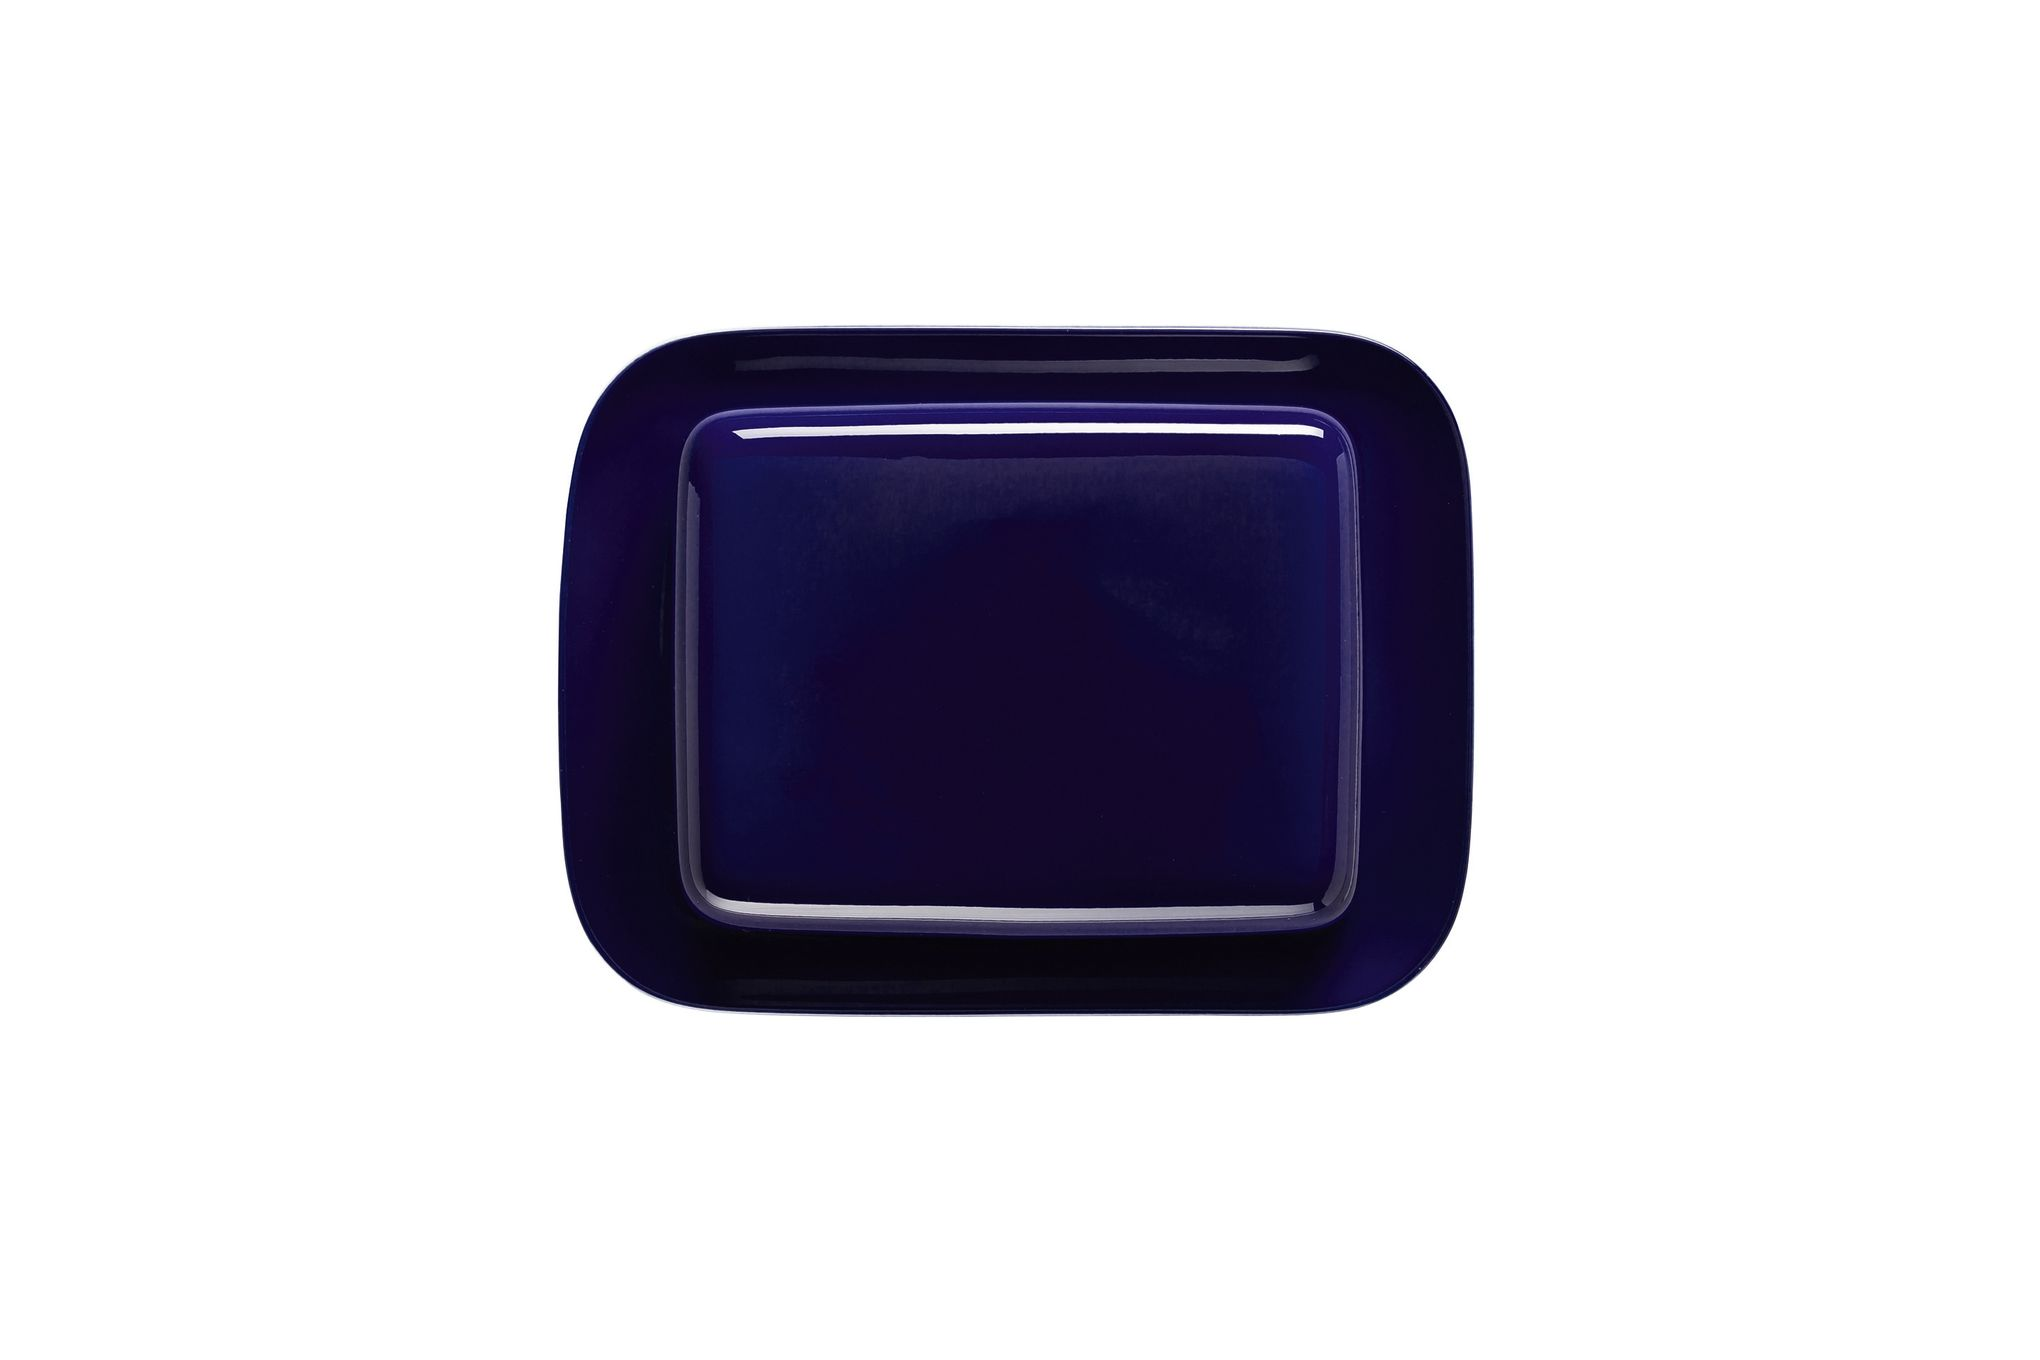 Thomas Sunny Day - Cobalt Blue Butter Dish + Lid thumb 2